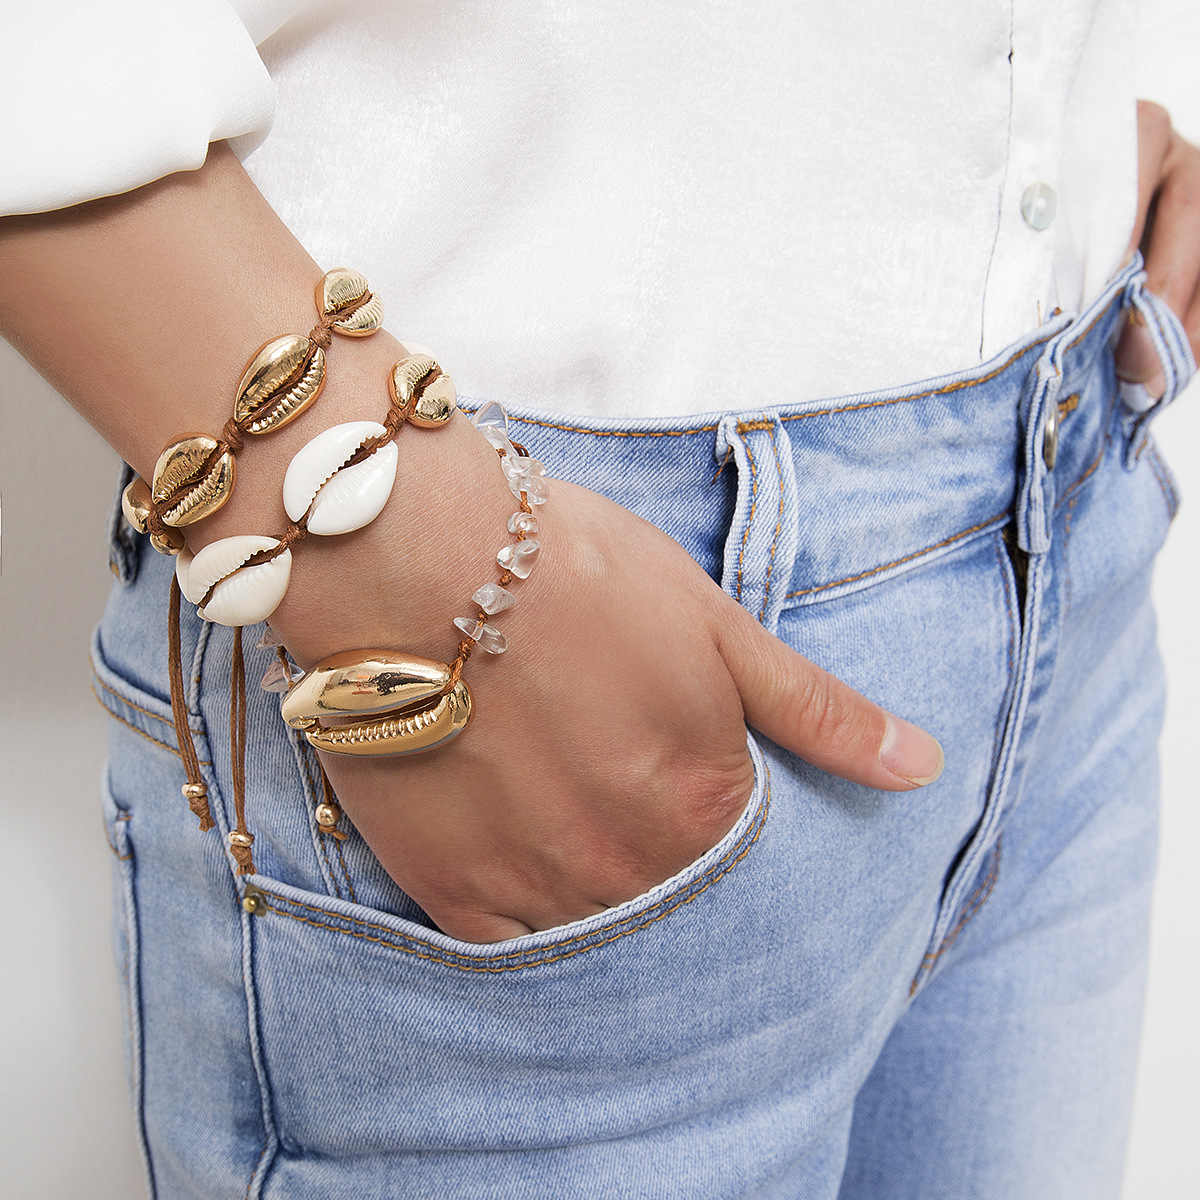 Gold Color Big Cowrie Shell Bracelets for Women Delicate Rope Chain Bracelet Beads Charm Bracelet Bohemian Beach Jewelry